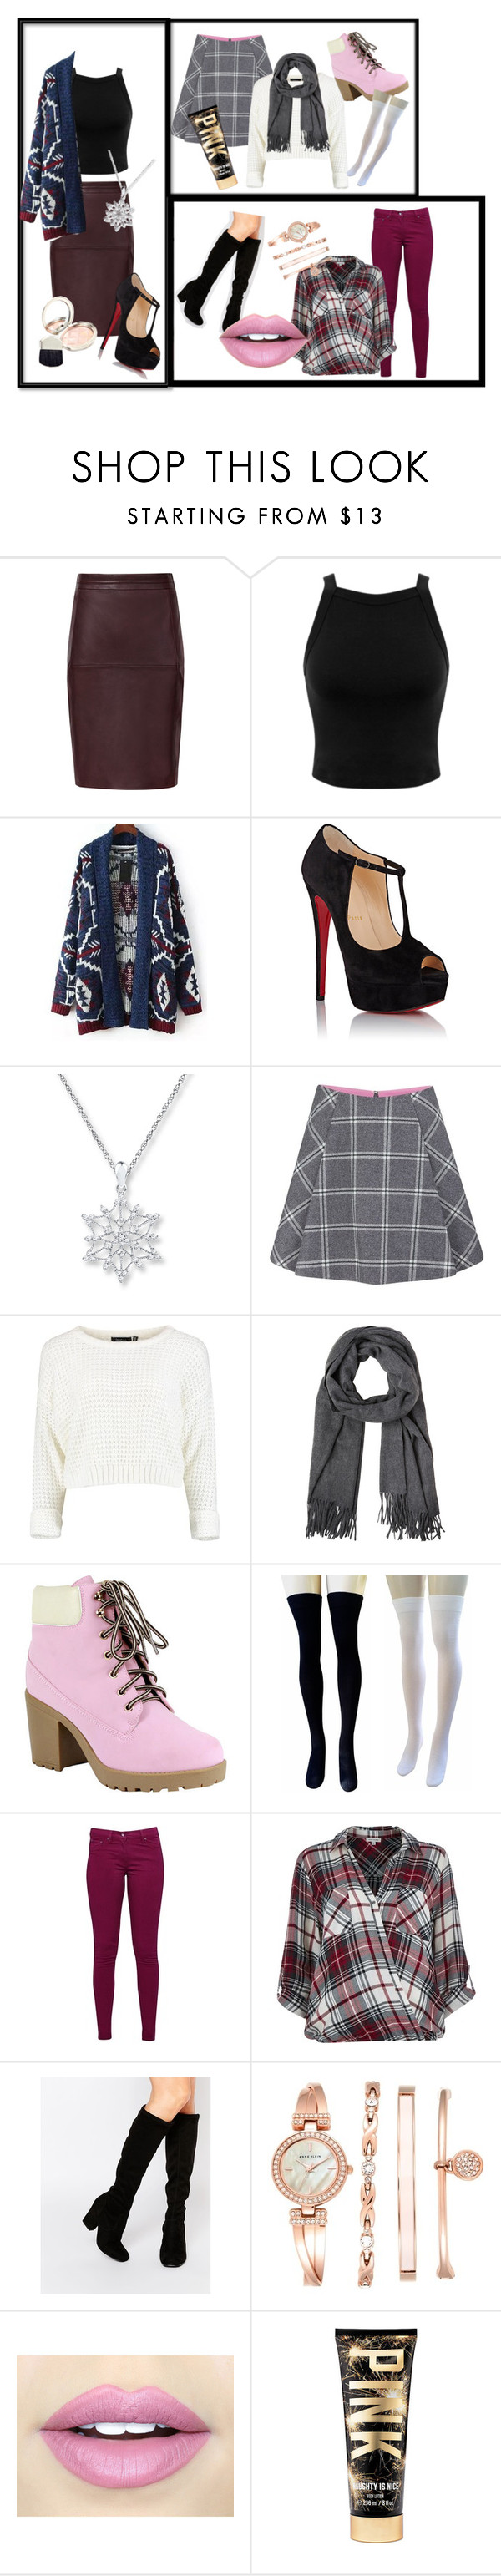 """""""Holiday"""" by gabrielledimura ❤ liked on Polyvore featuring Miss Selfridge, Relaxfeel, Christian Louboutin, Paul & Joe Sister, Reneeze, Great Plains, River Island, Faith, Anne Klein and Fiebiger"""